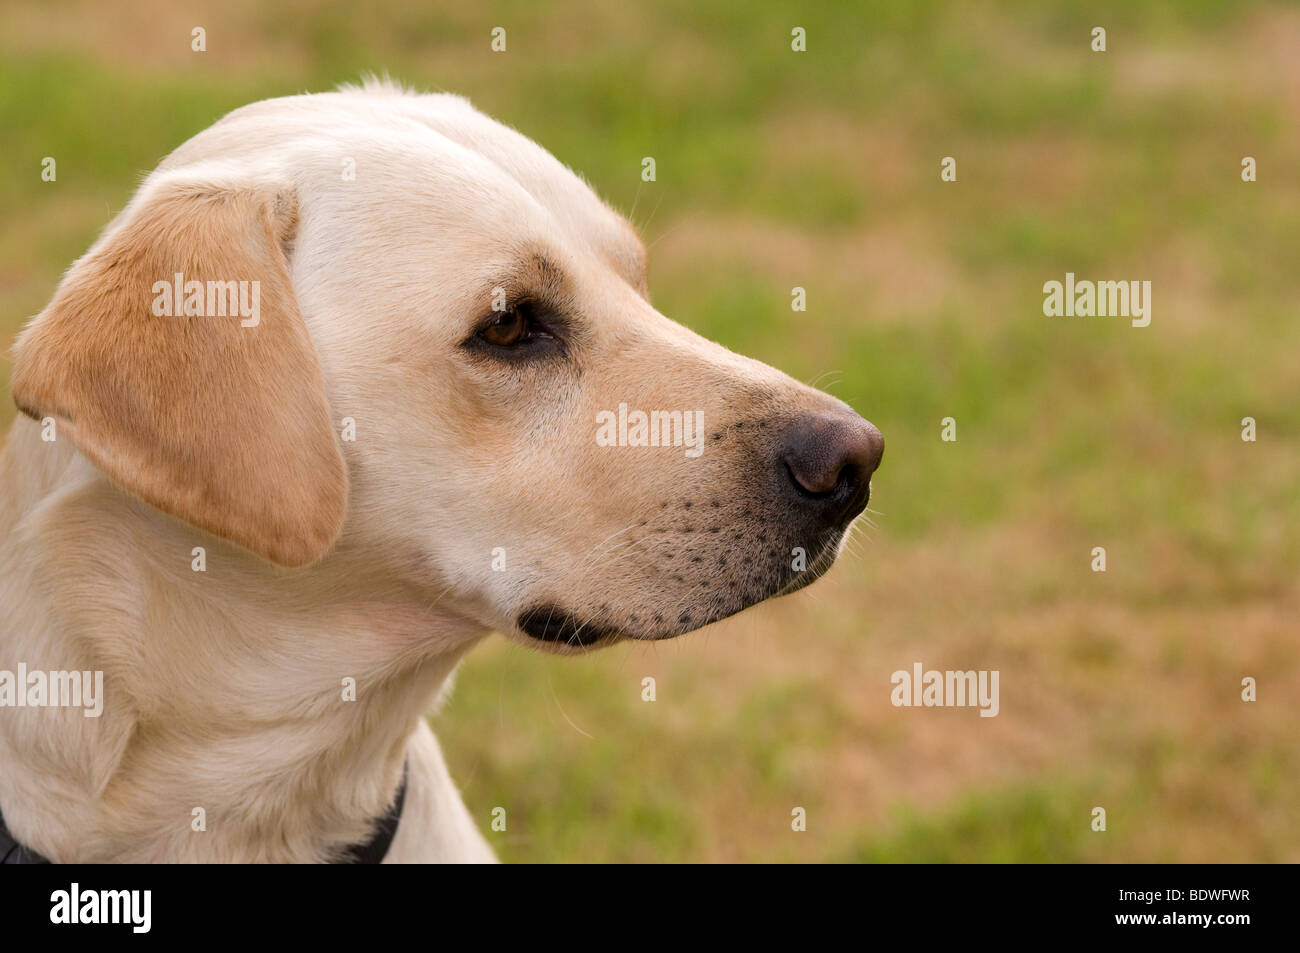 Side view and close up yellow labrador retriever dog - Stock Image